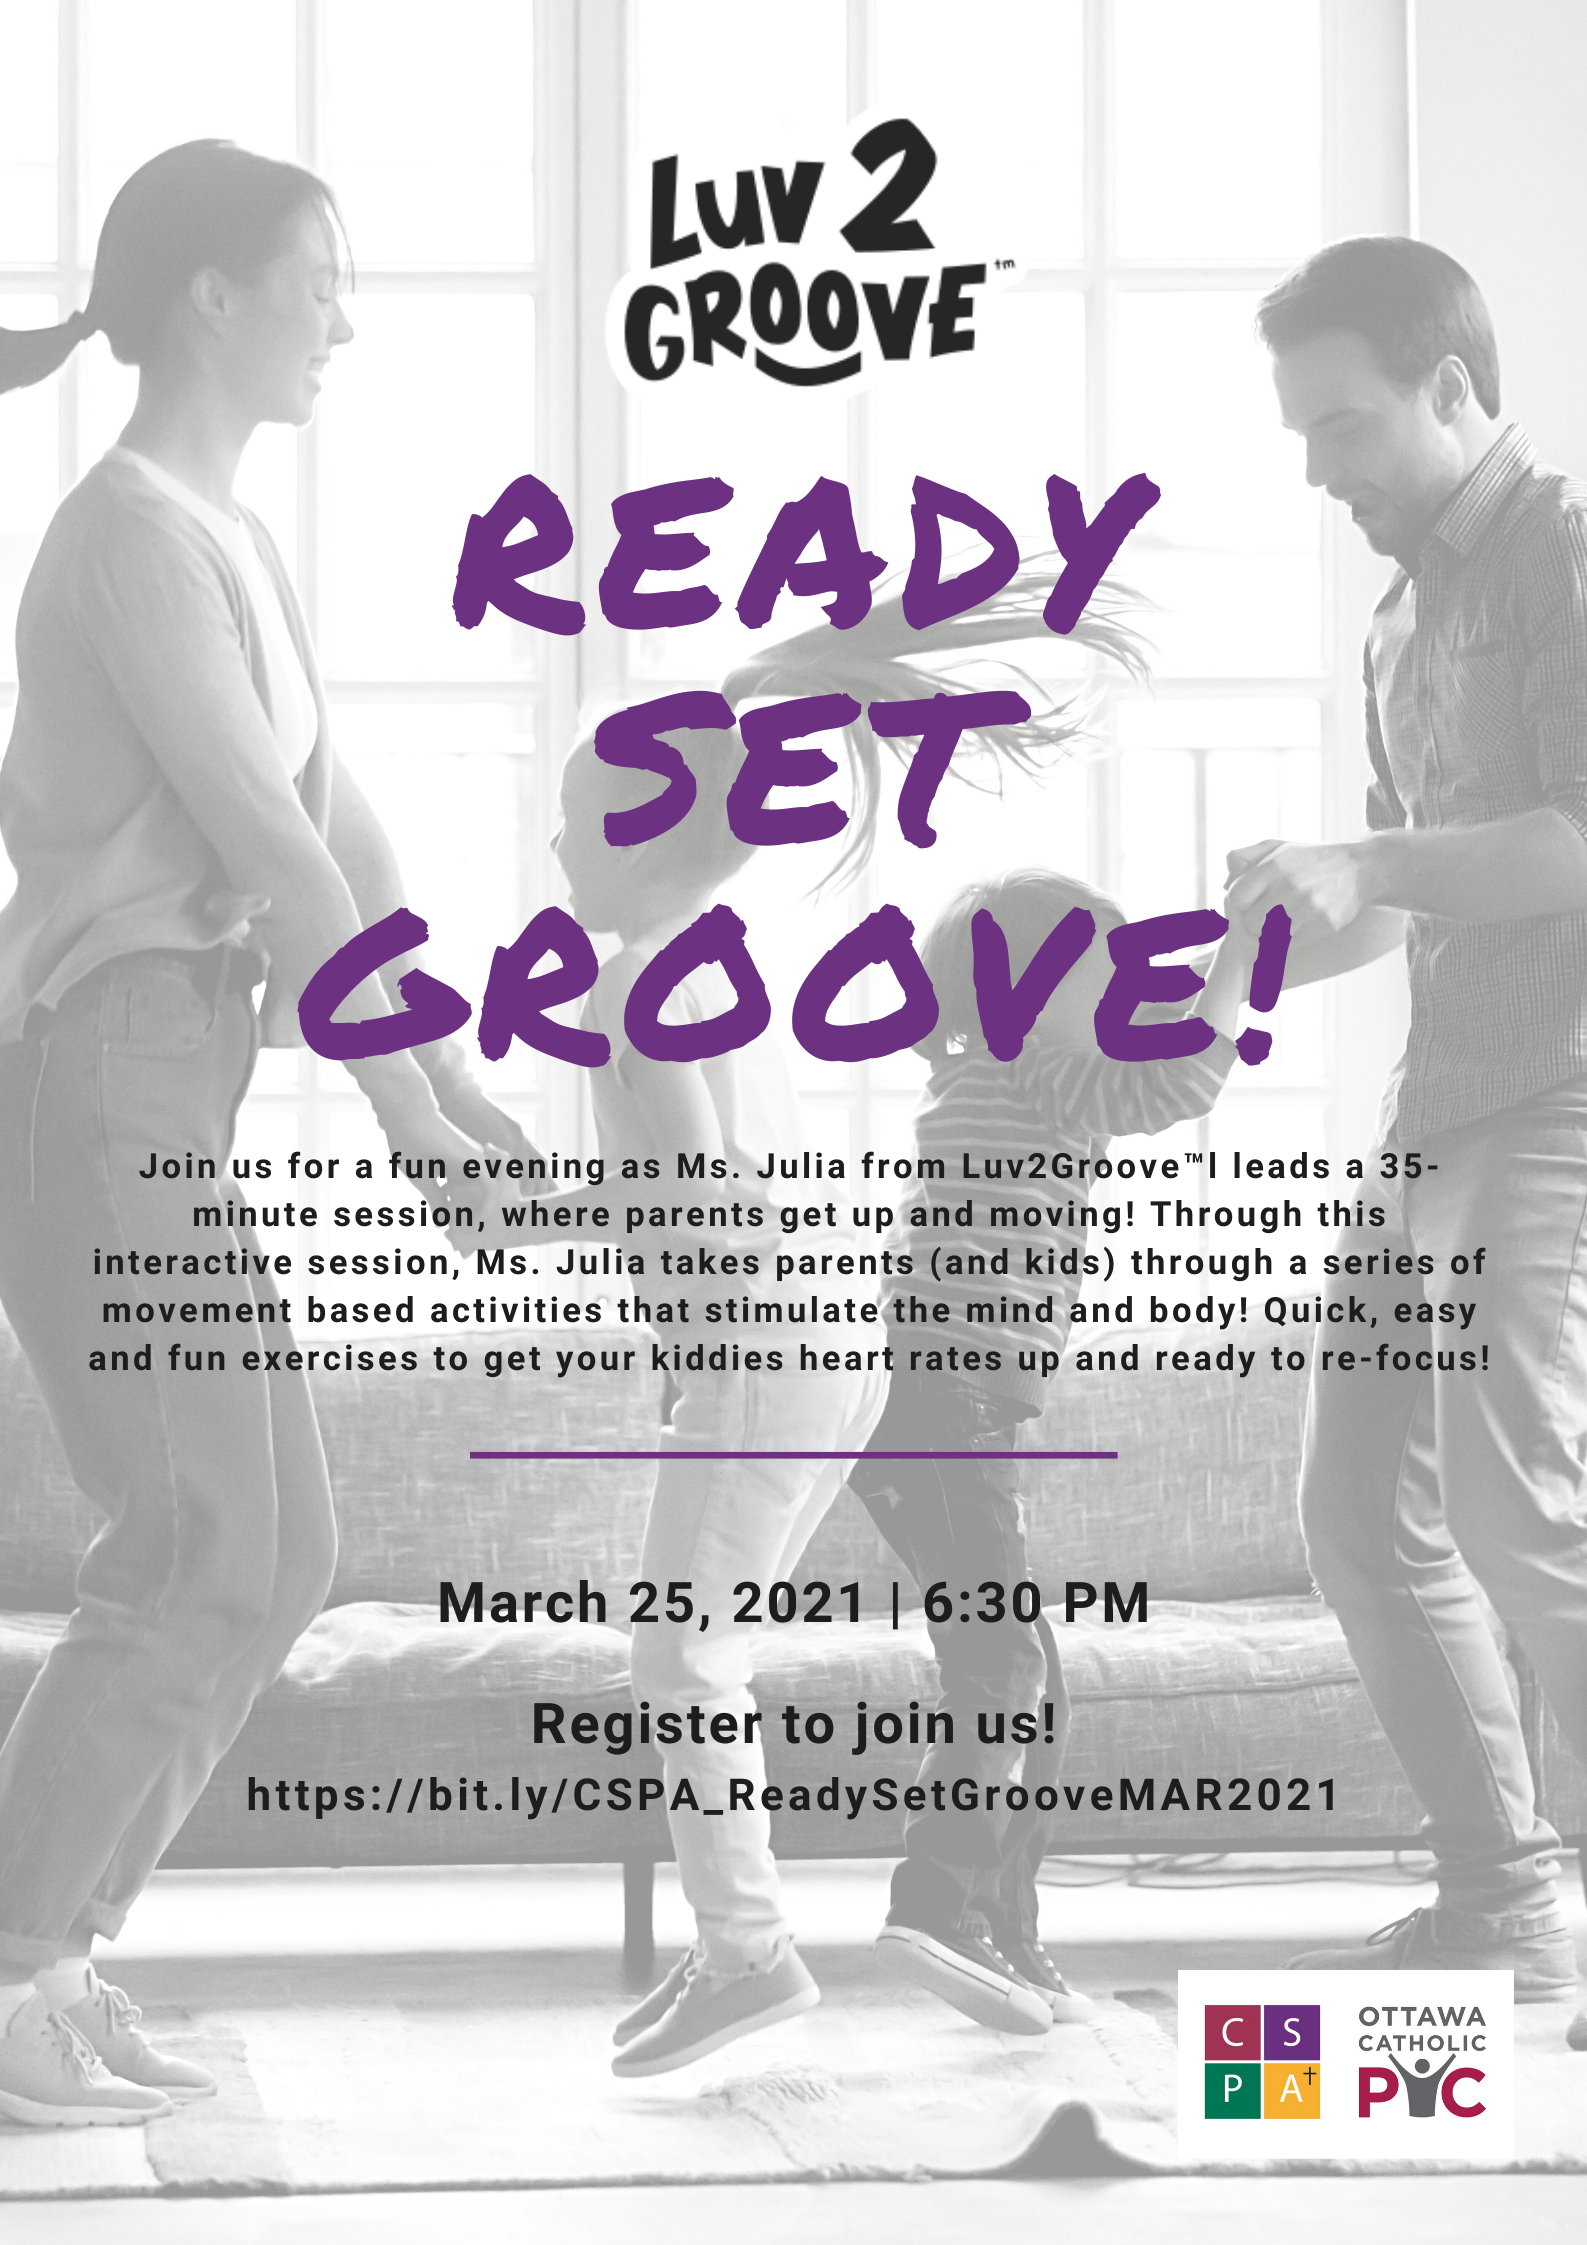 Ready, Set, GROOVE! March 25th @6:30pm